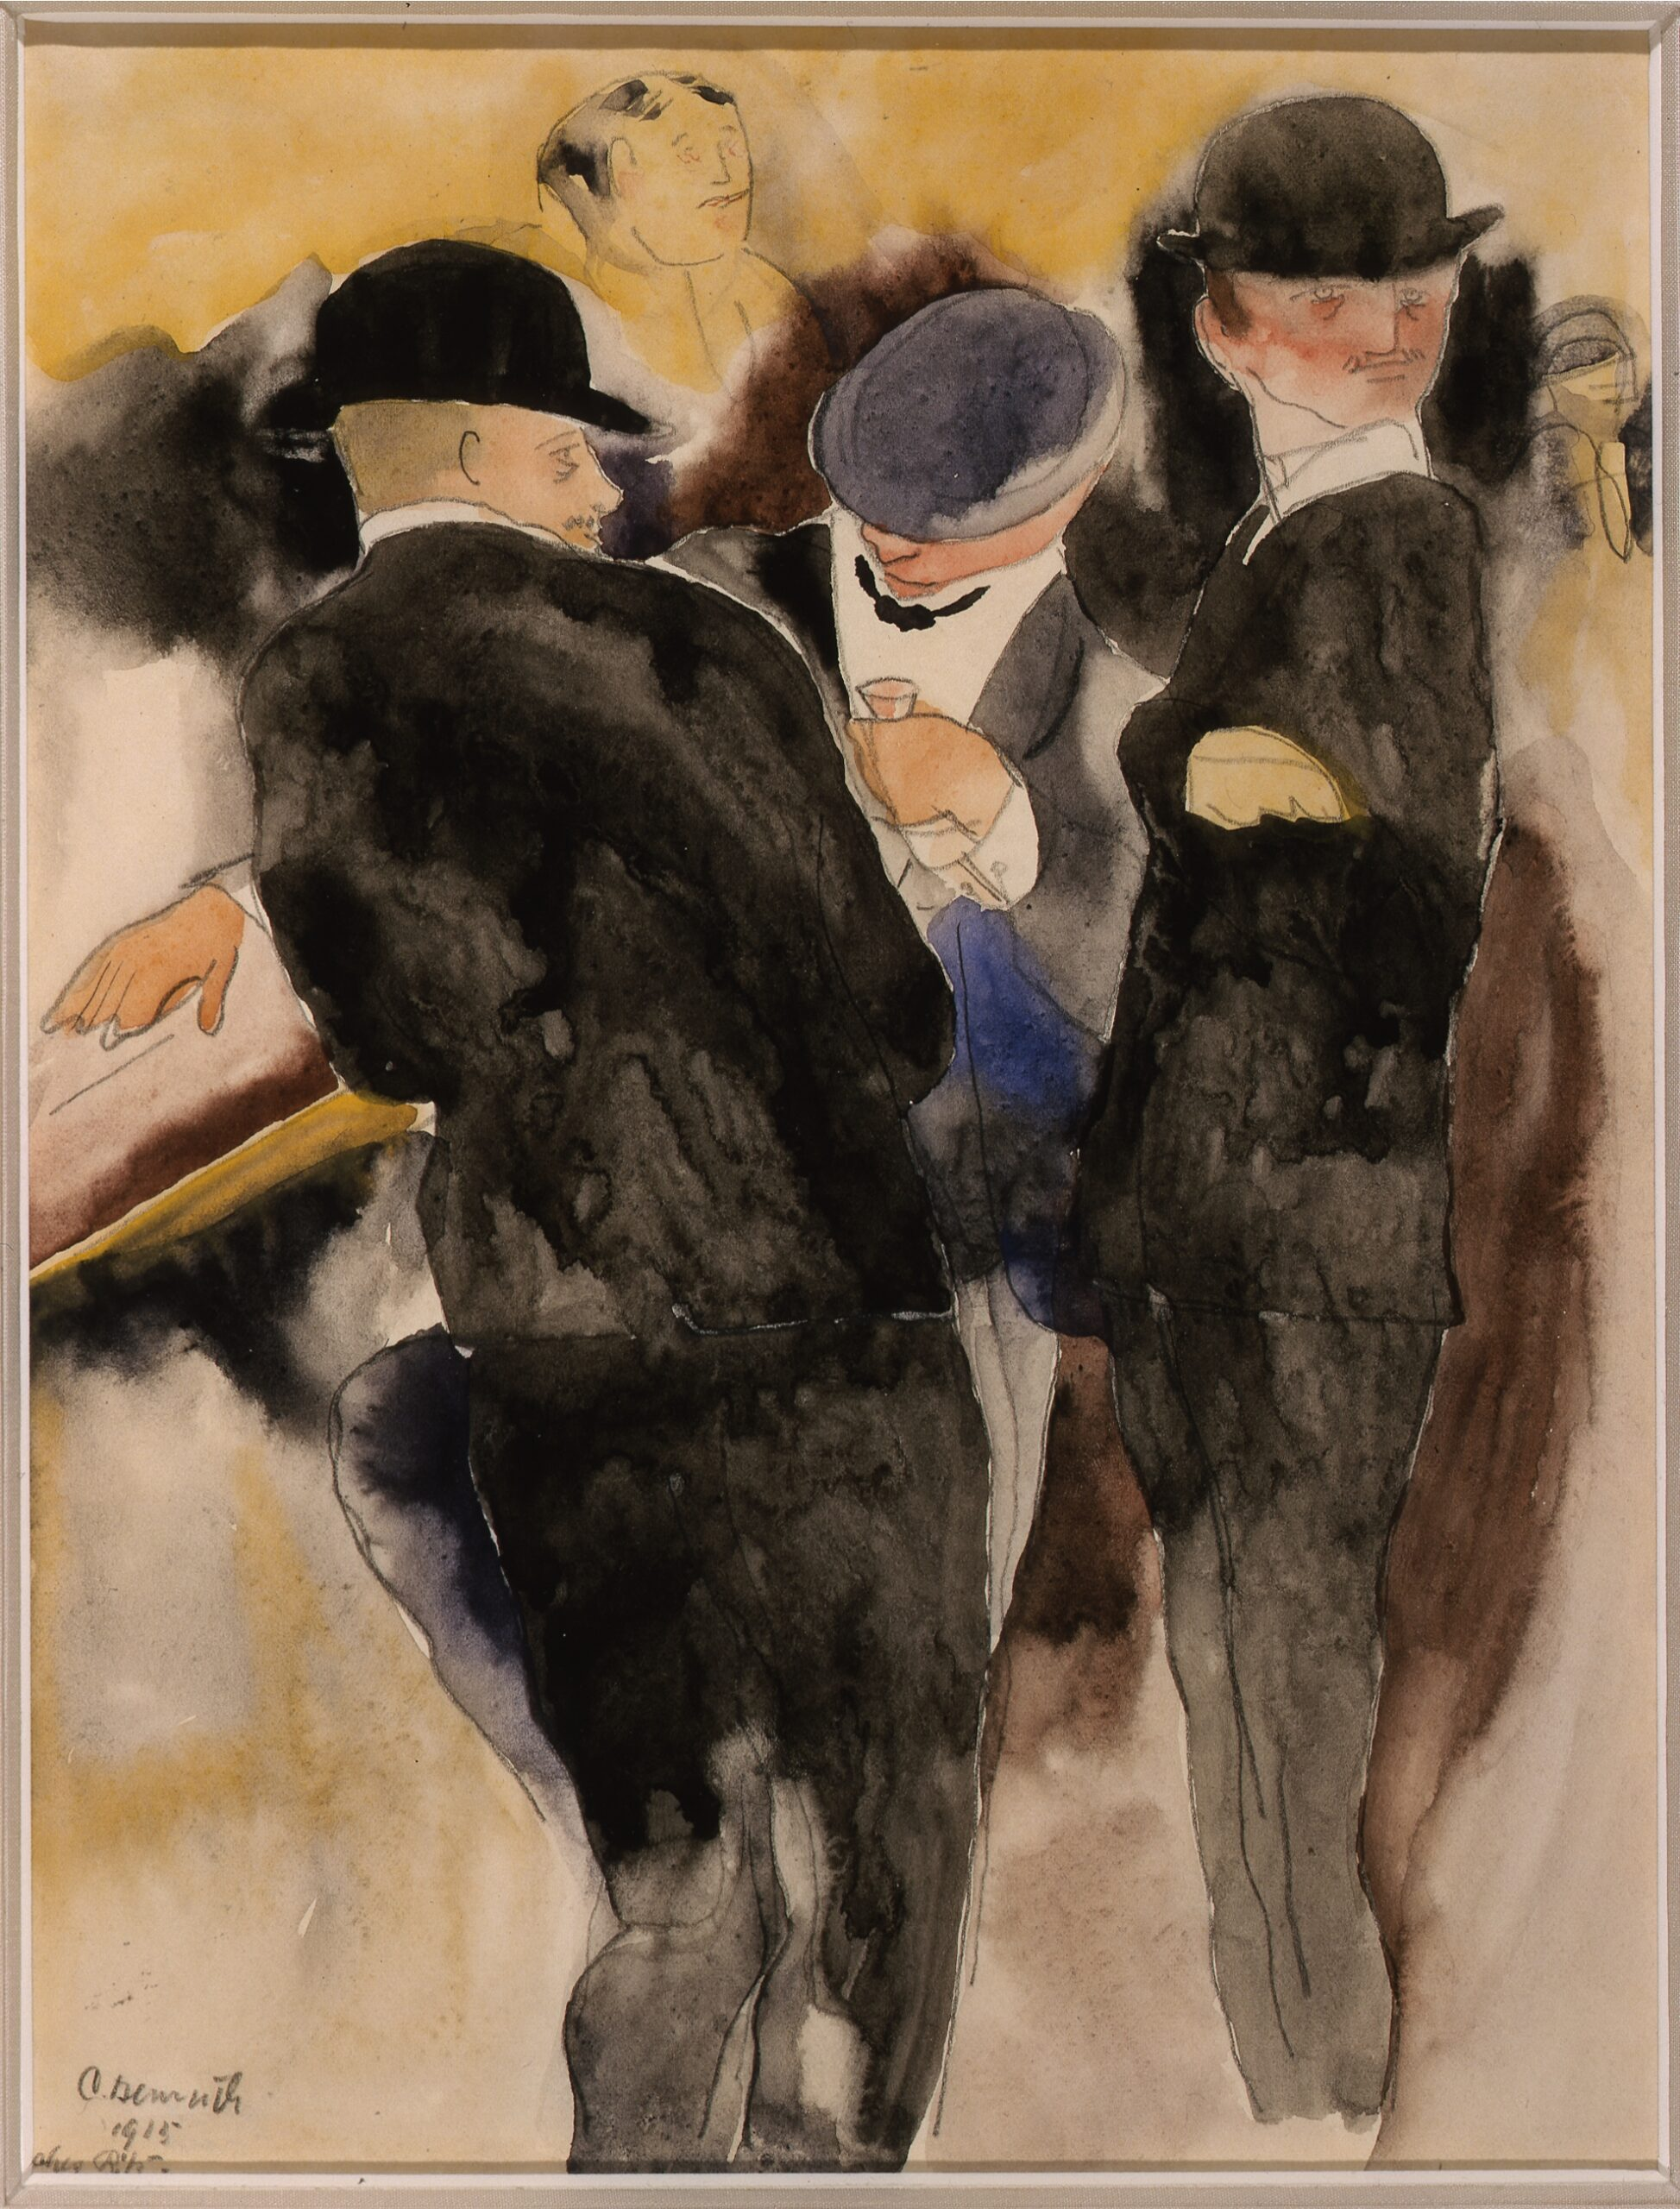 Charles Demuth, The Drinkers. 1915. Gift of Ferdinand Howald